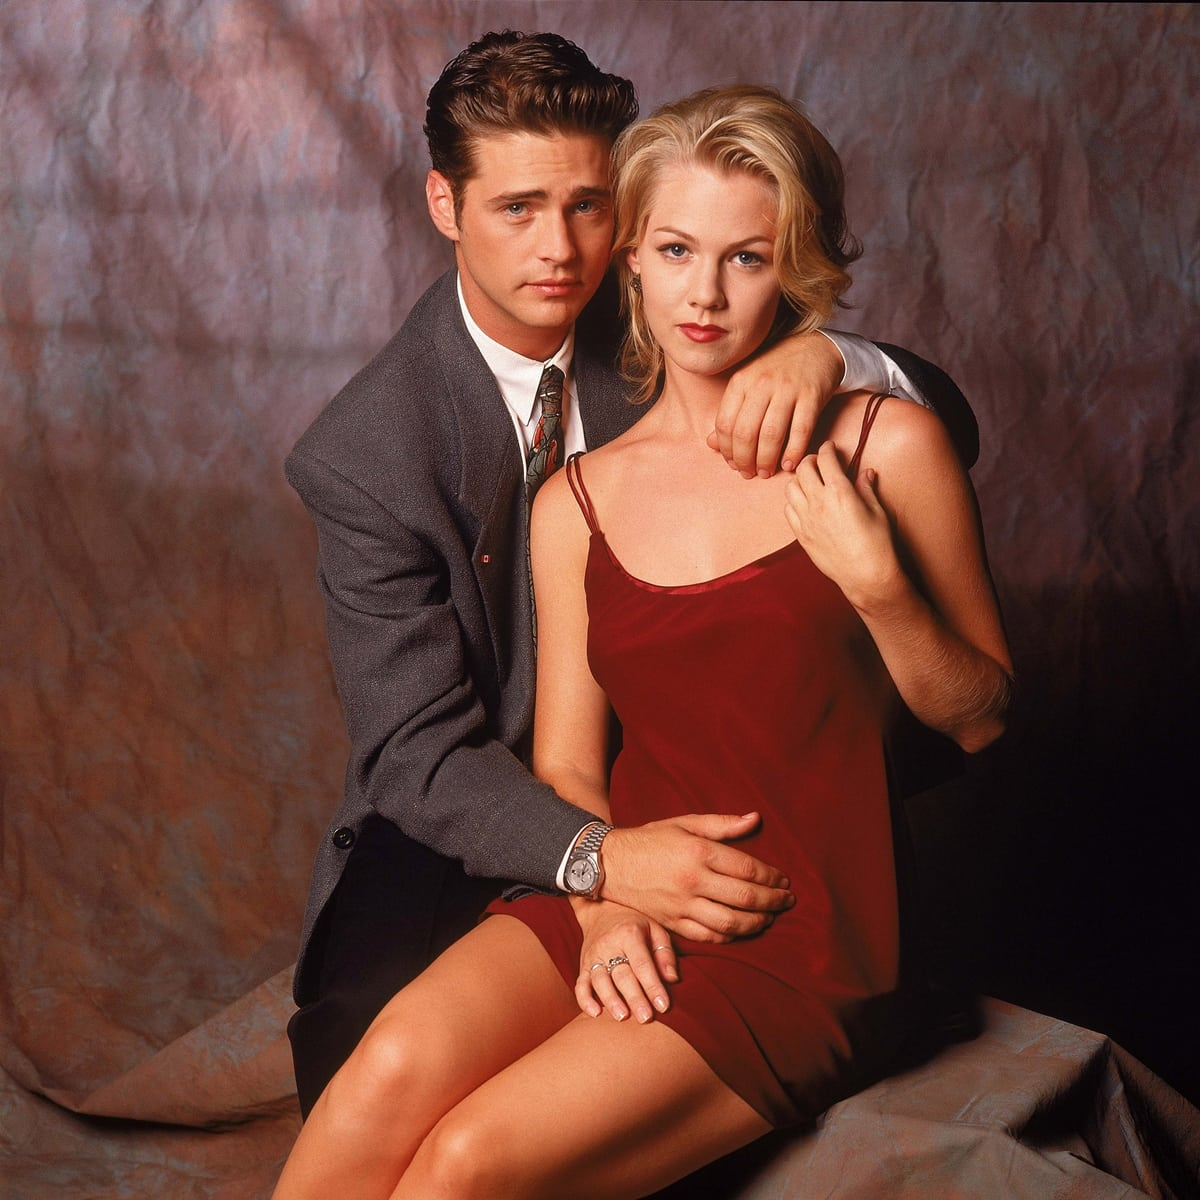 Jason Priestly (as Brandon) and Jennie Garth (as Kelly) have both refuted Jessica Alba's claims regarding Beverly Hills, 90210